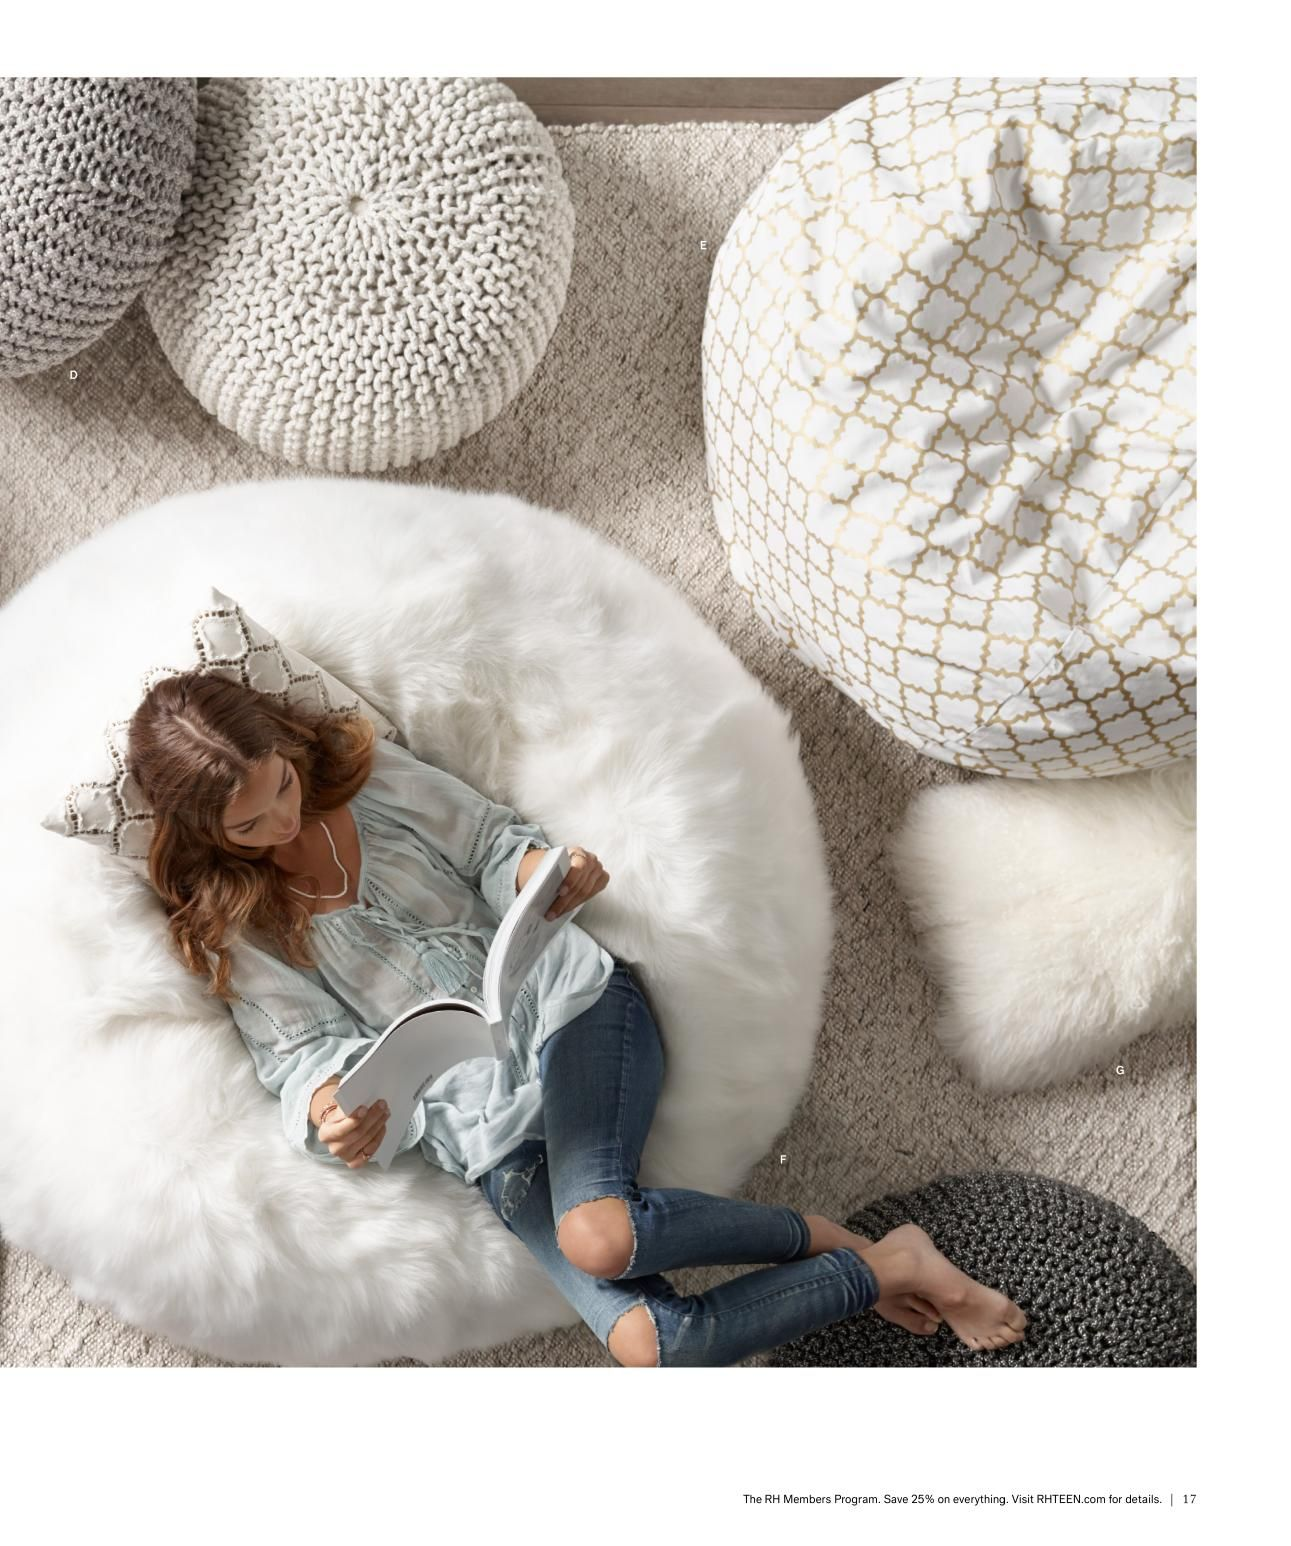 bean bag chairs for teens orla kiely chair love the faux fur and pillow meadowbrook lala s